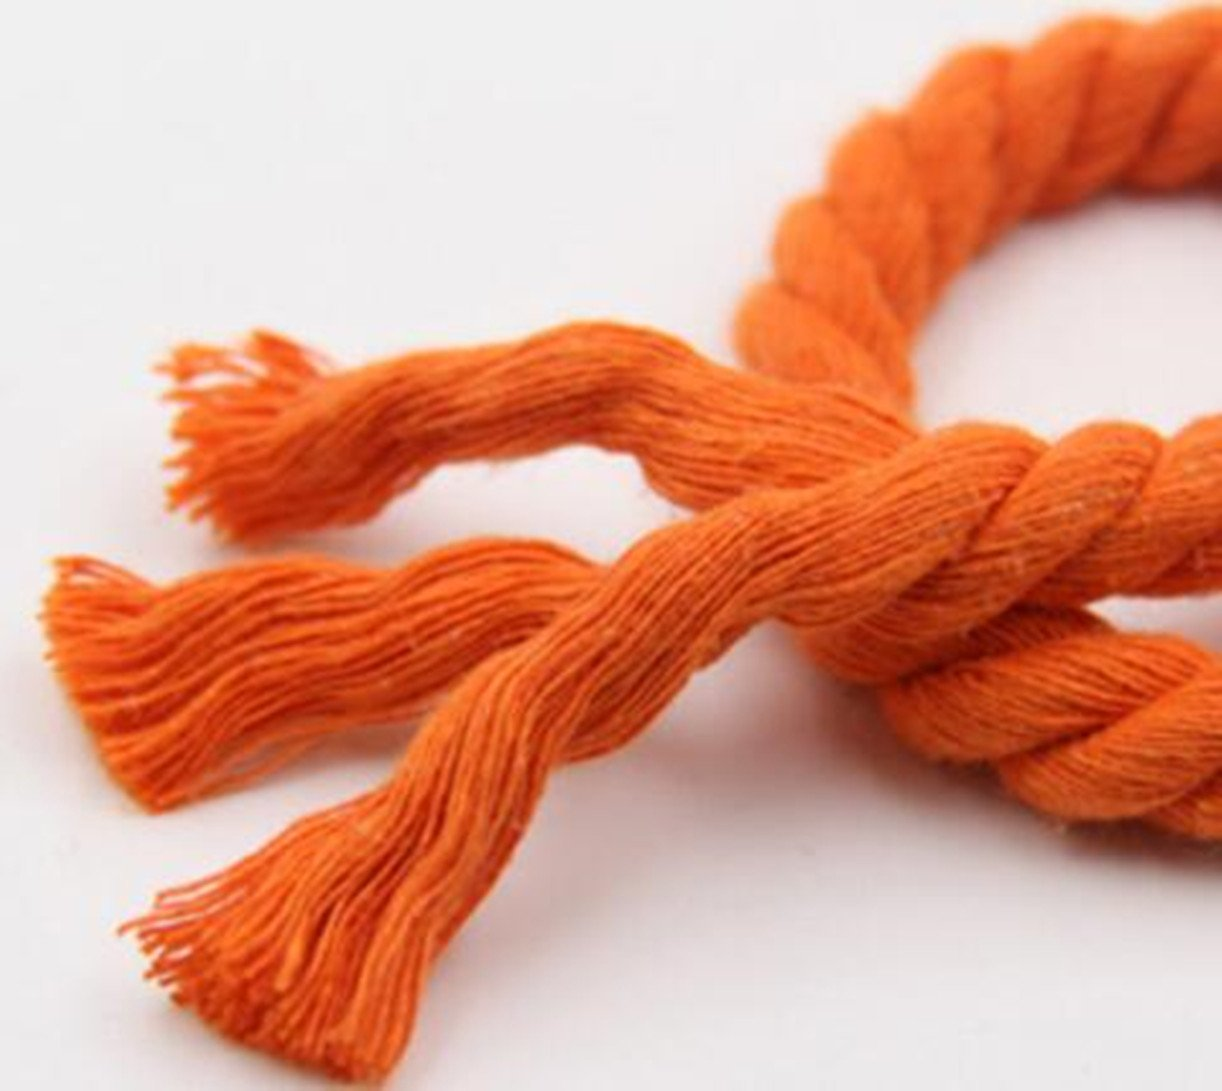 WellieSTR (100Metters/109yards) ORANGE 3 Shares Twisted Cotton Cords 8mm DIY Craft Decoration Rope Cotton Cord for Bag Drawstring Belt by WellieSTR (Image #4)